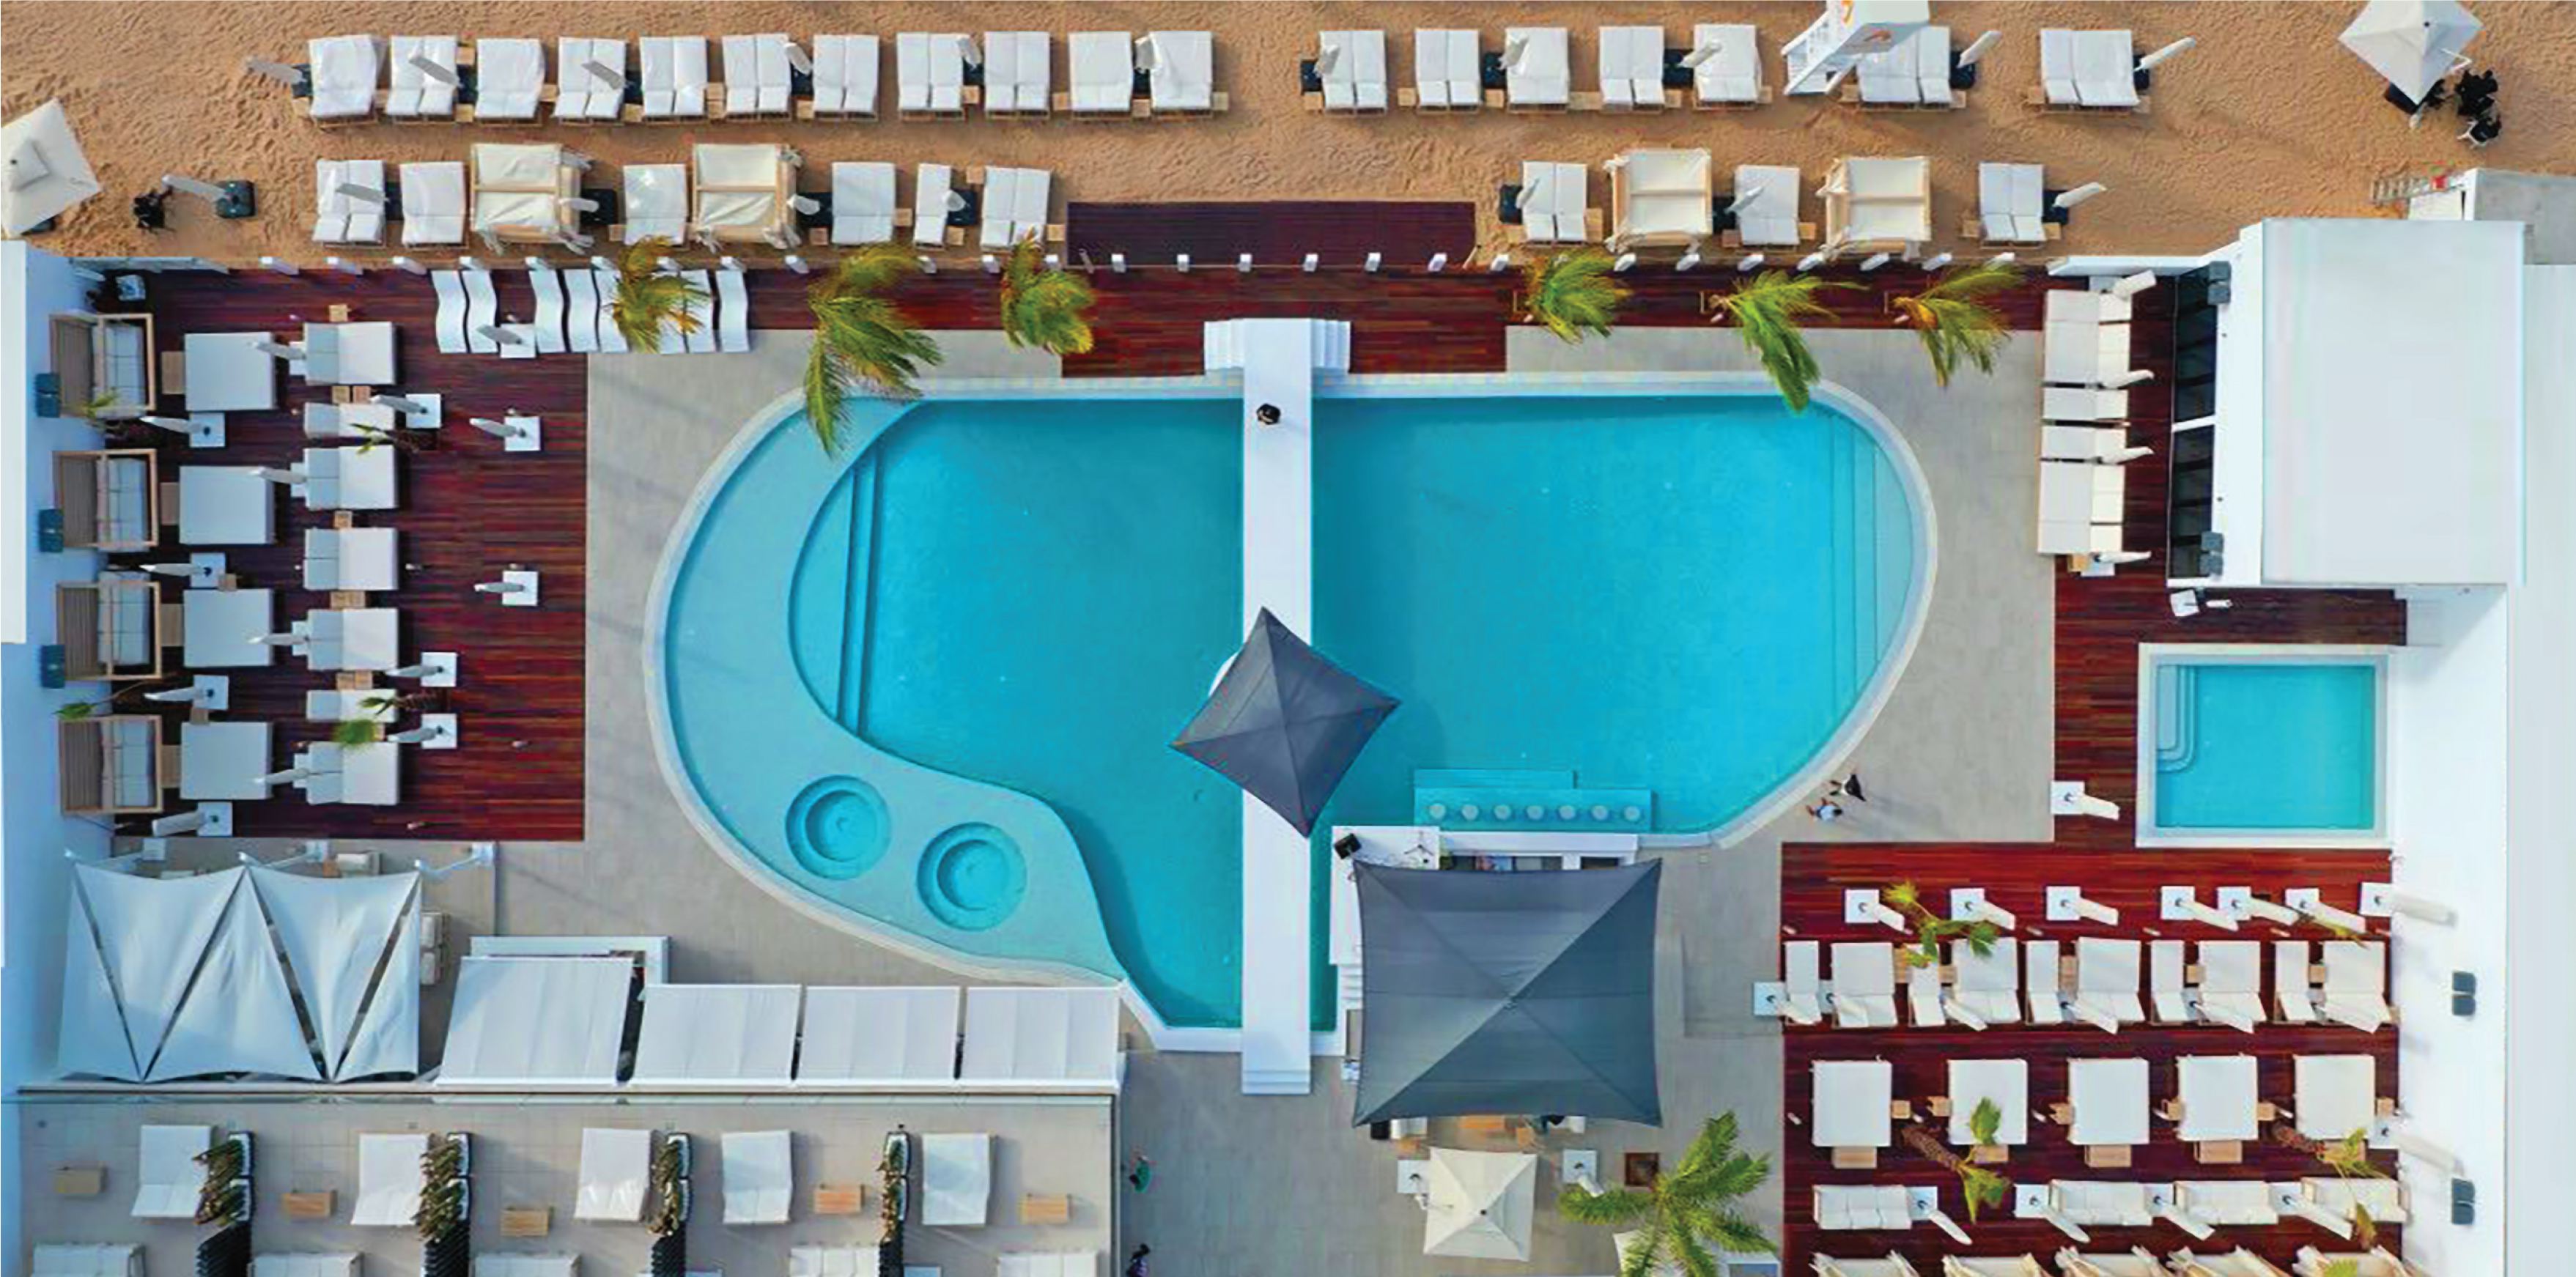 Claim | Lookal Beach Club | Imagem piscina